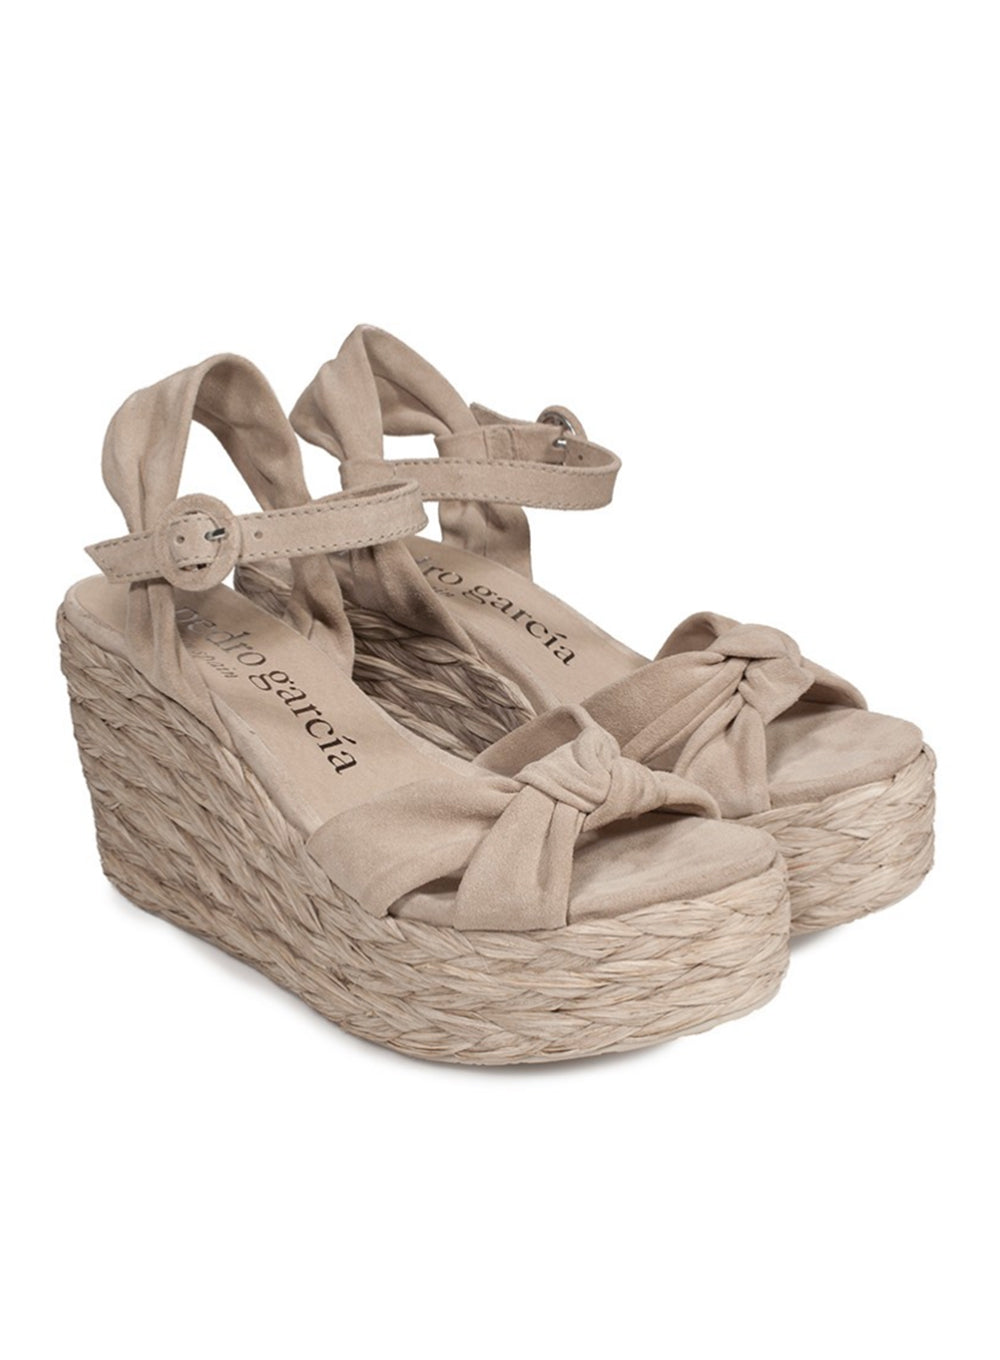 PEDRO GARCIA | 'Darril' Knotted Midi Wedge Espadrille